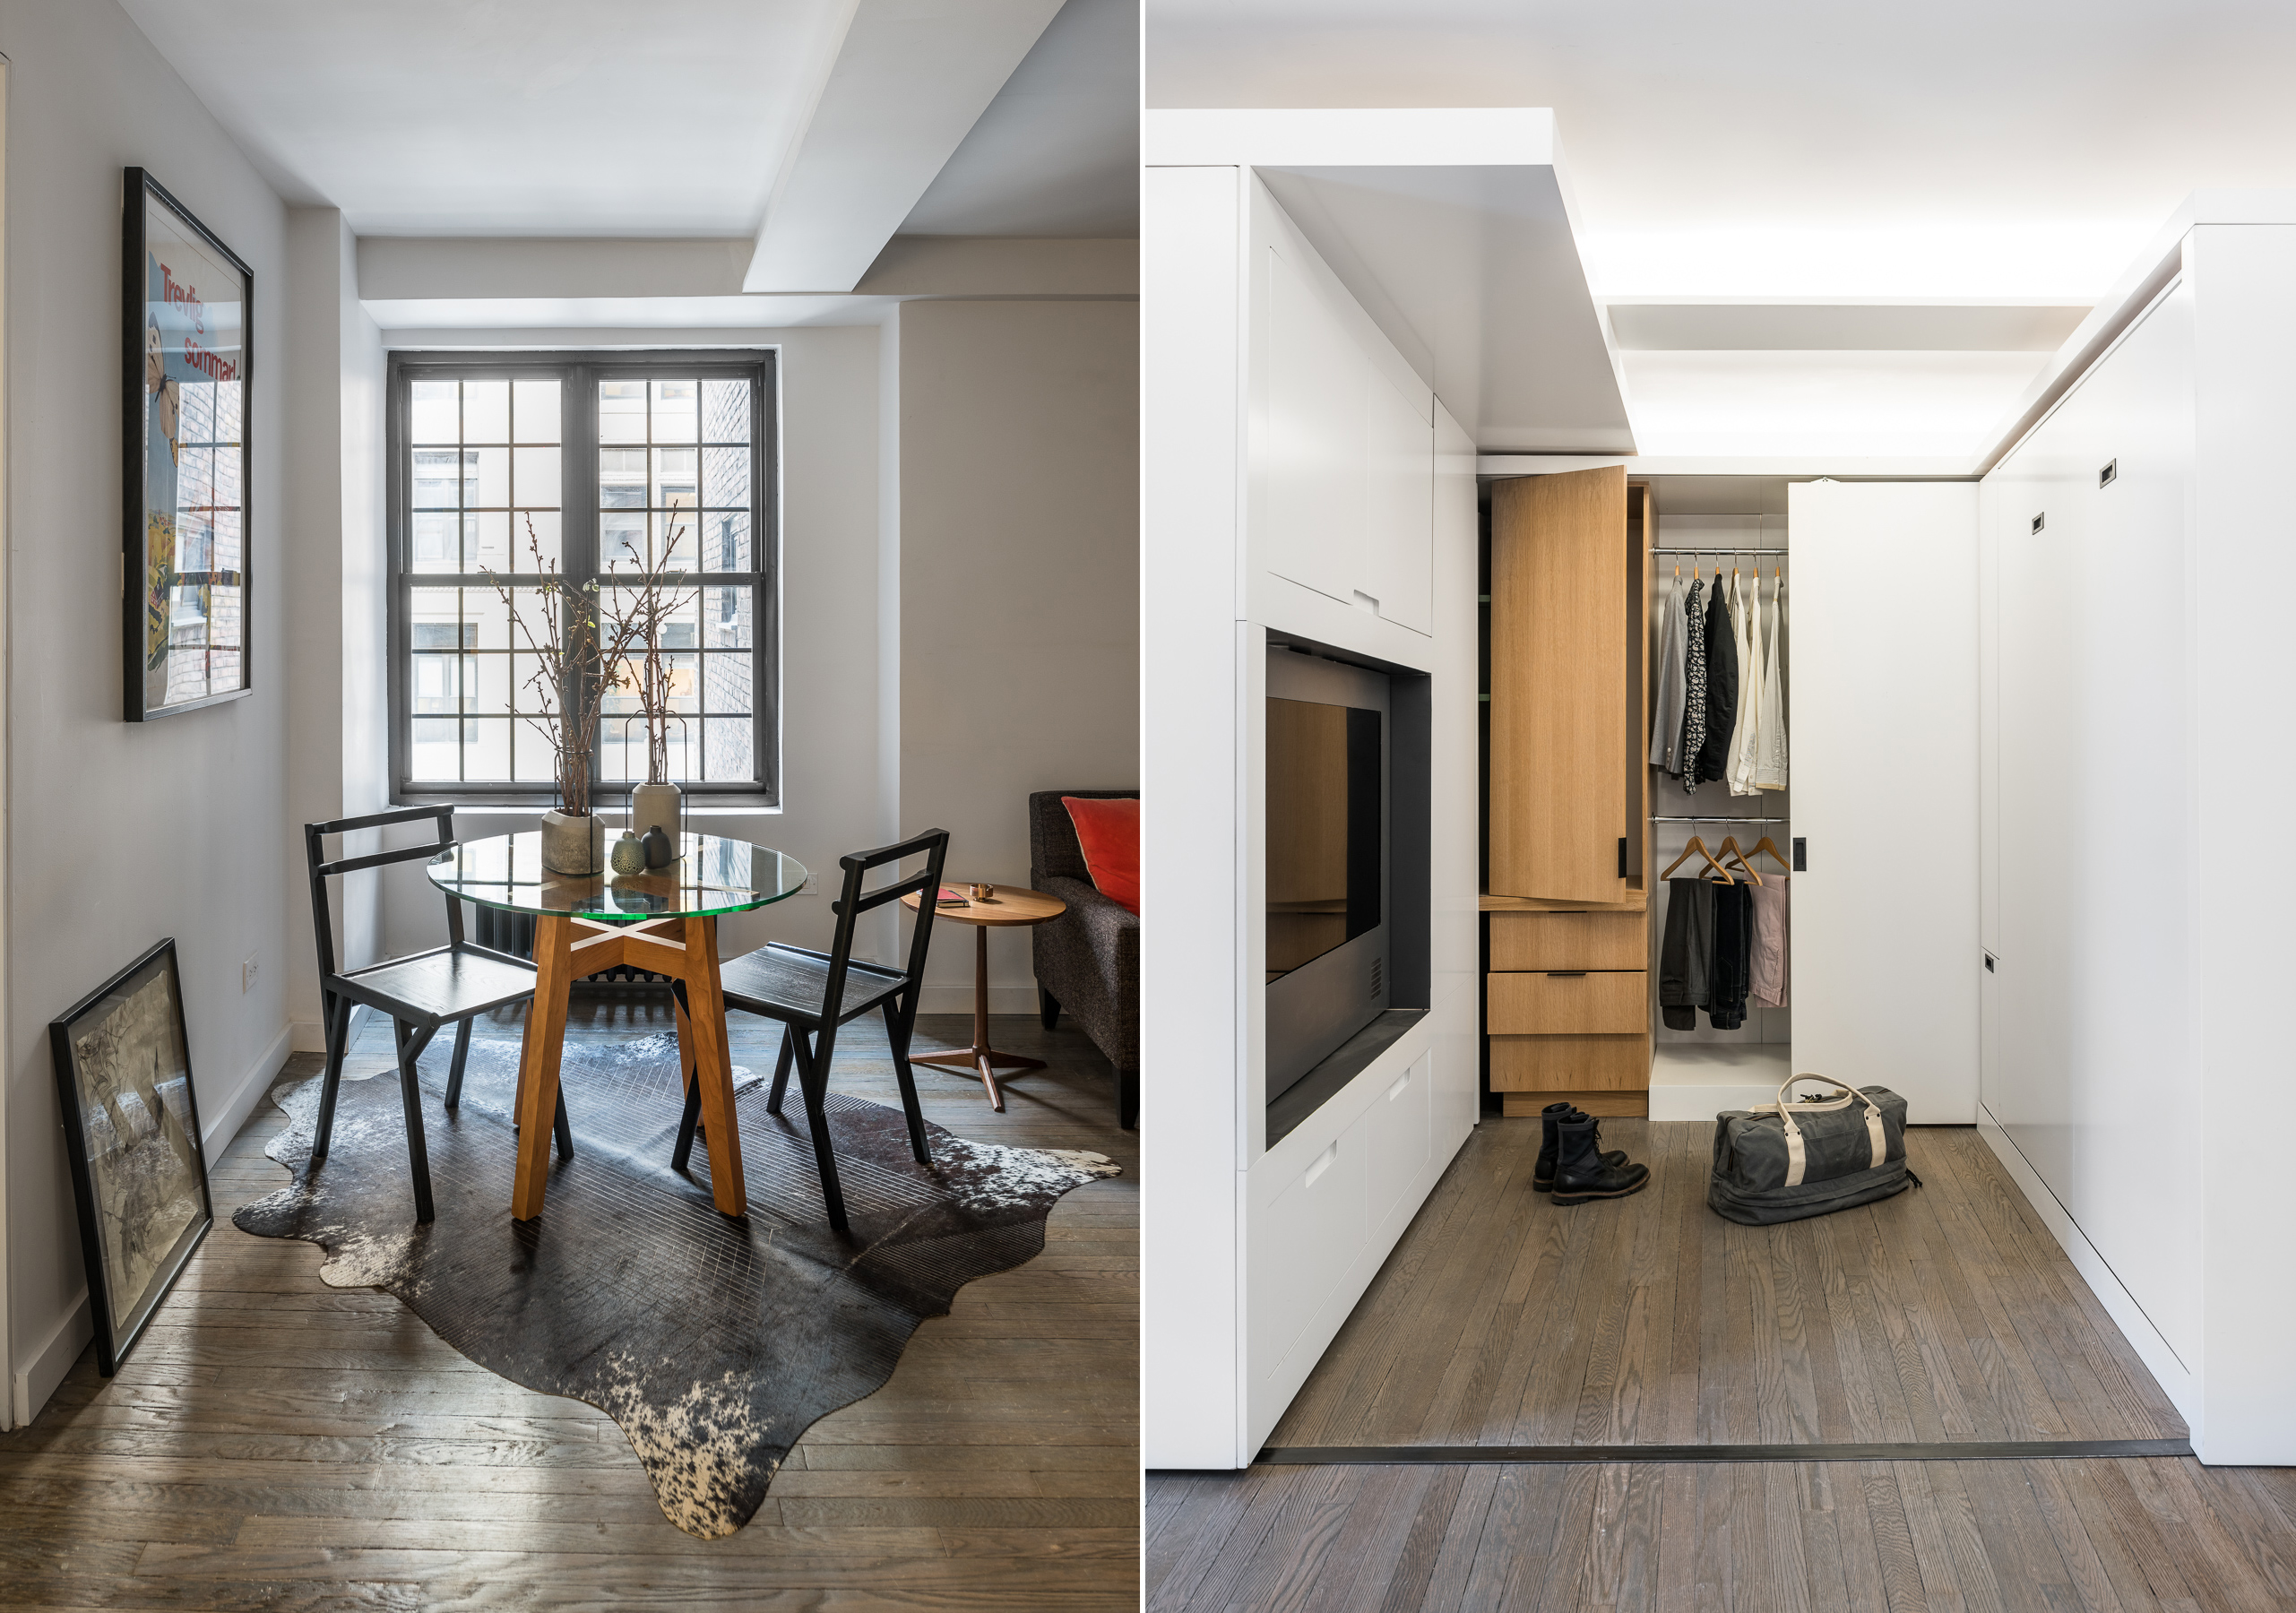 A Transformer Apartment That Does More With Less